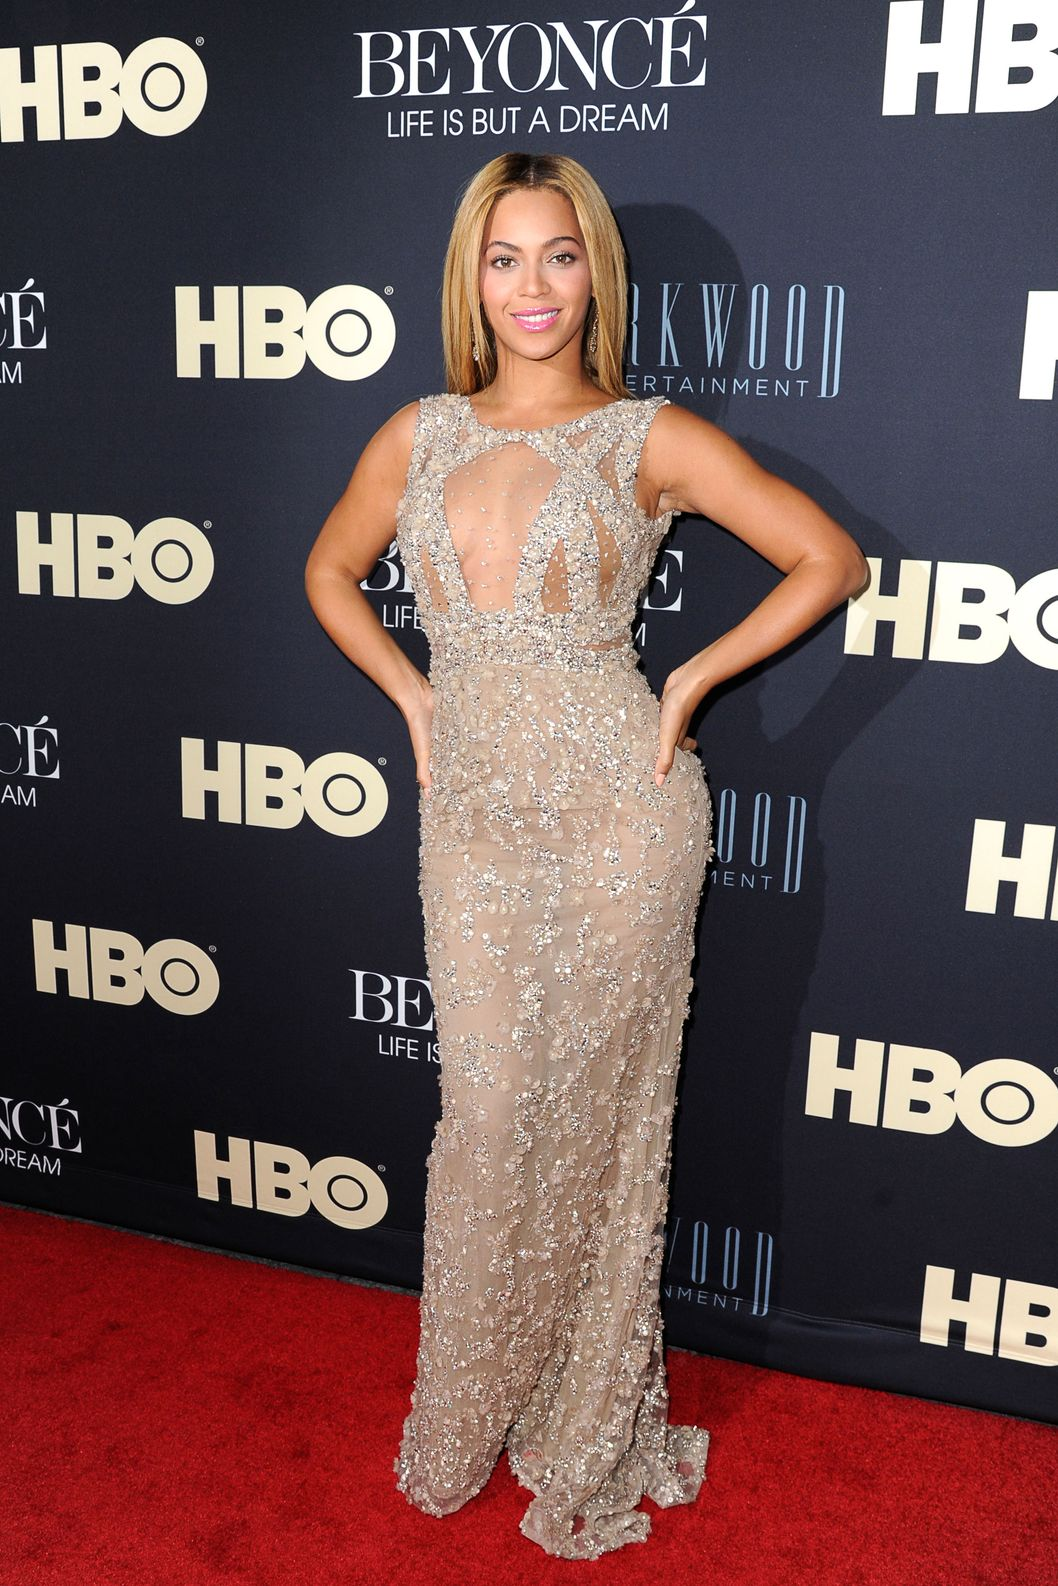 "Beyonce  Knowles attends  ""Beyonce: Life Is But A Dream"" New York Premiere  at Ziegfeld Theater on February 12, 2013 in New York City."